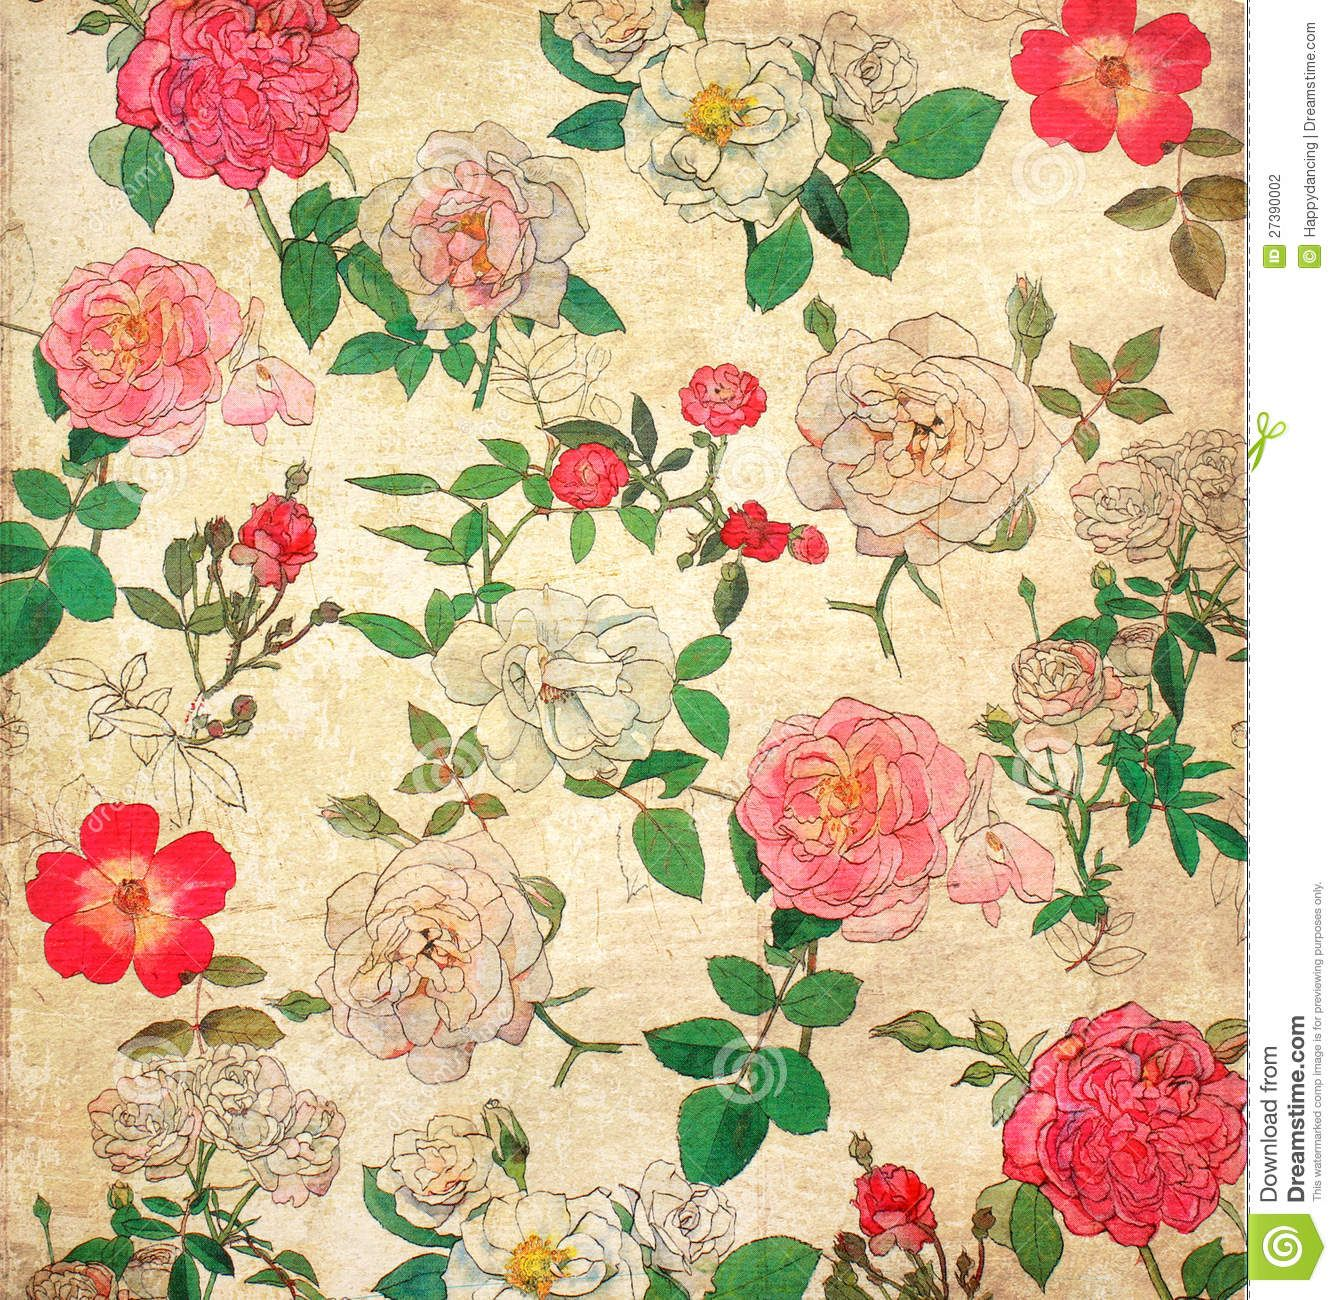 Stock Photo Floral Vintage Wallpaper By C Nongnuch Leelaphasuk